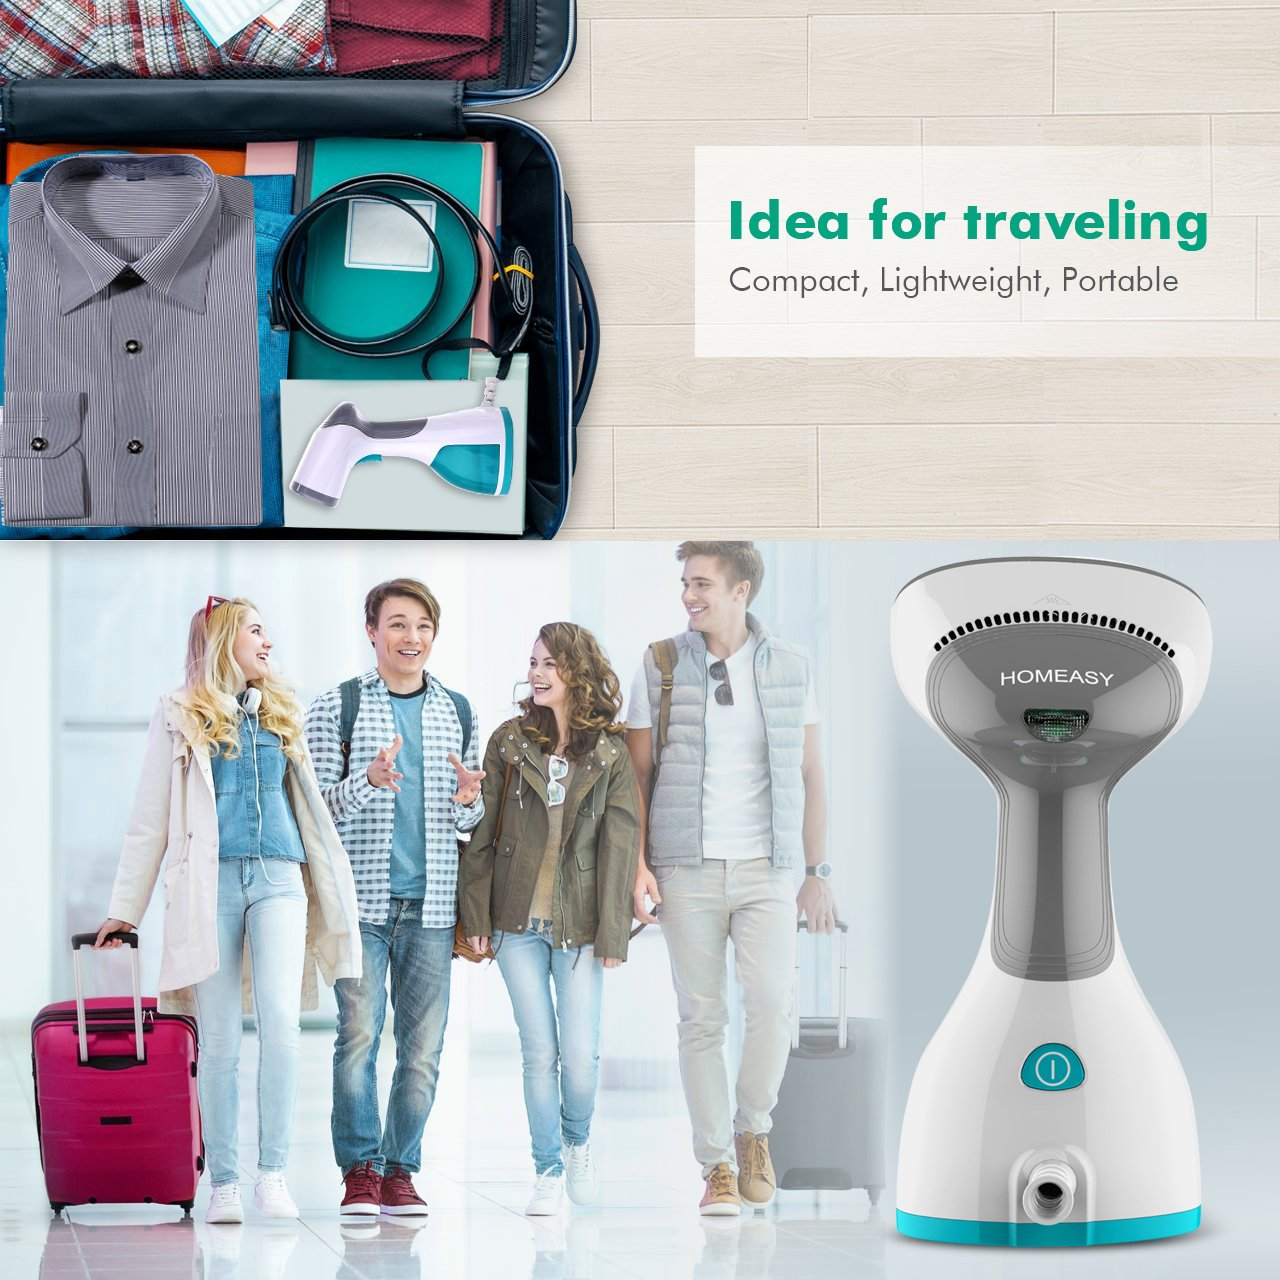 homeasy Clothes Steamer Garment Steamer 5 in 1 Handheld Fabric Steamer Wrinkle Remover with Fast Heat-up Function for Home and Travel [Satisfaction Guarantee]